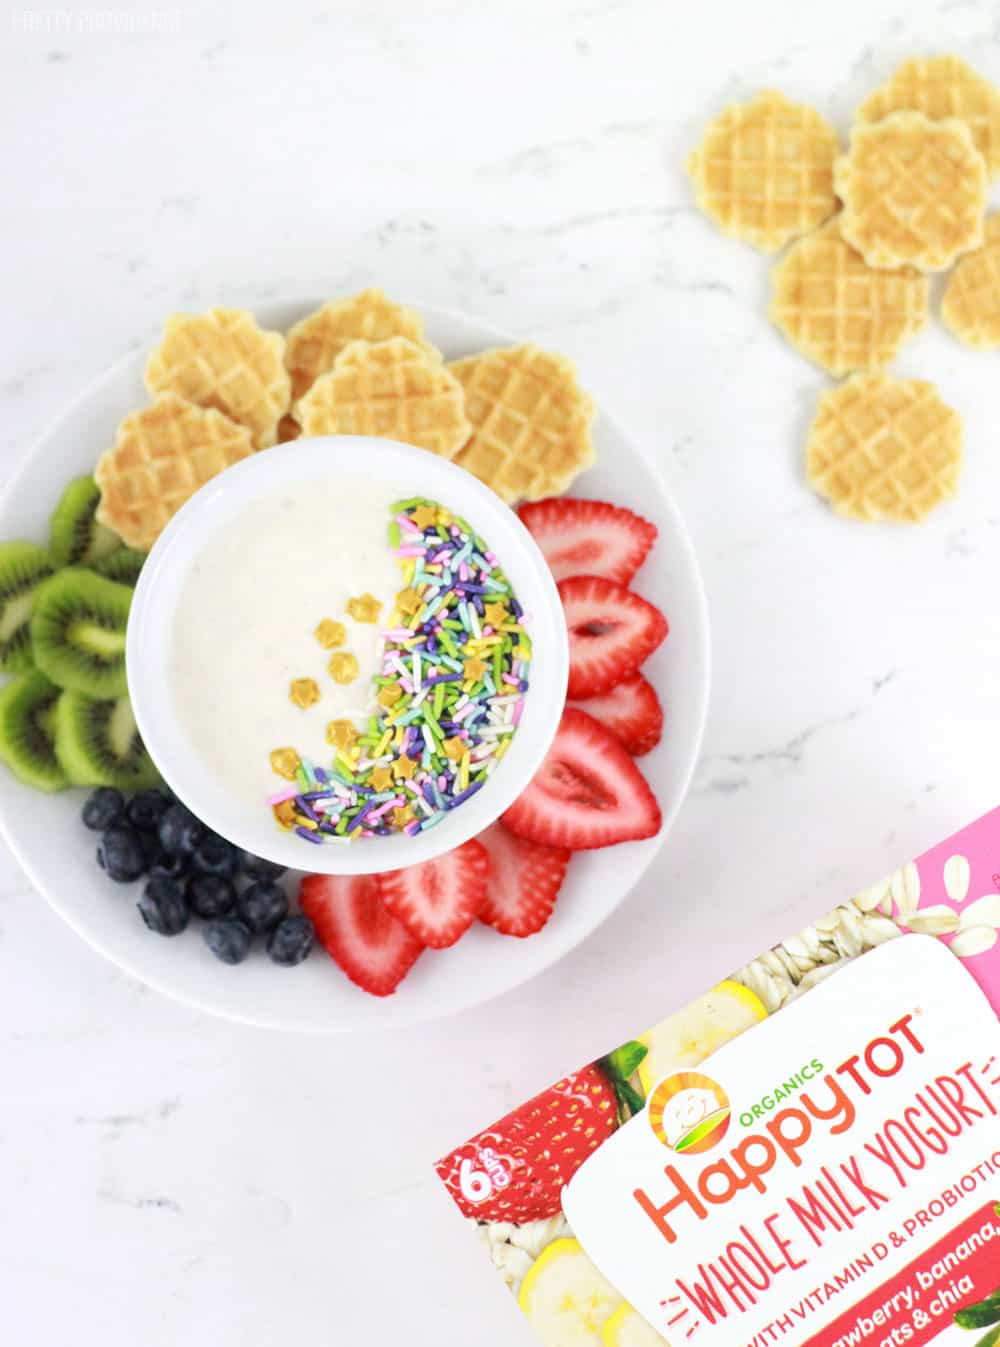 Picky eater? Try sprinkles in yogurt with fruit on the side!